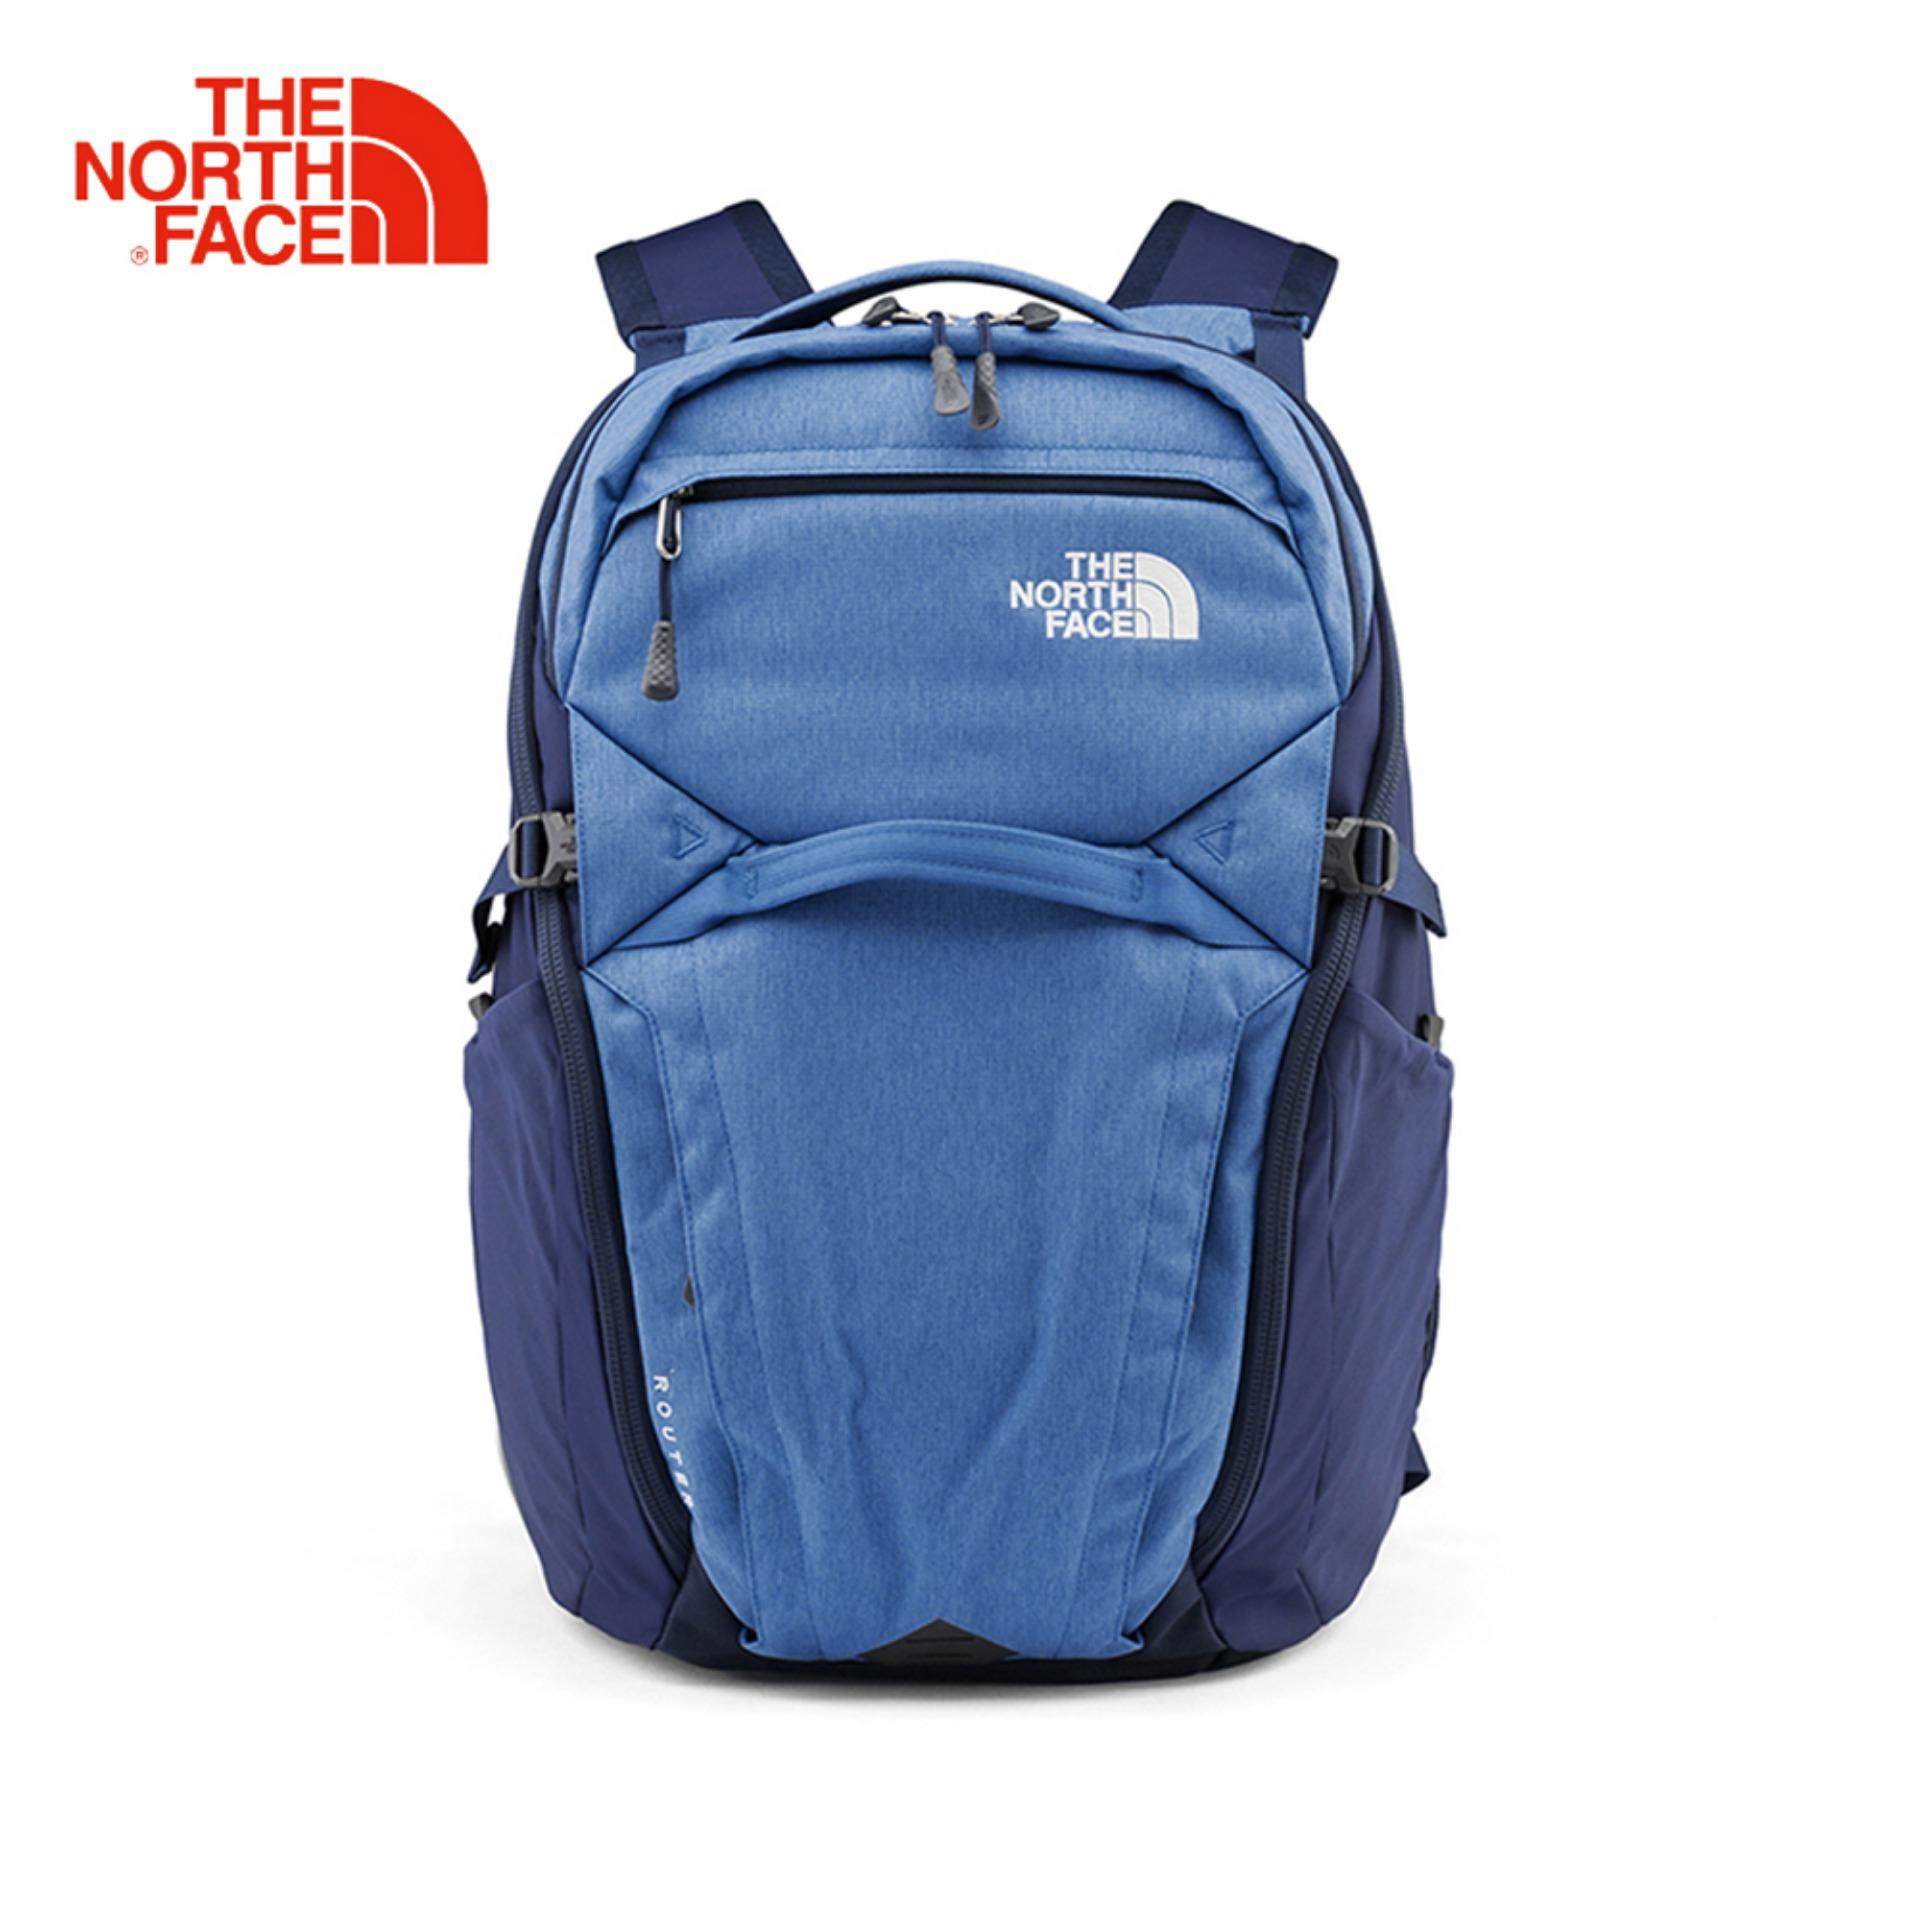 8321c26efbf1 The North Face Router 40L Comfortable FlexVent™ Laptop Tablet Book  Reflective Back Pack